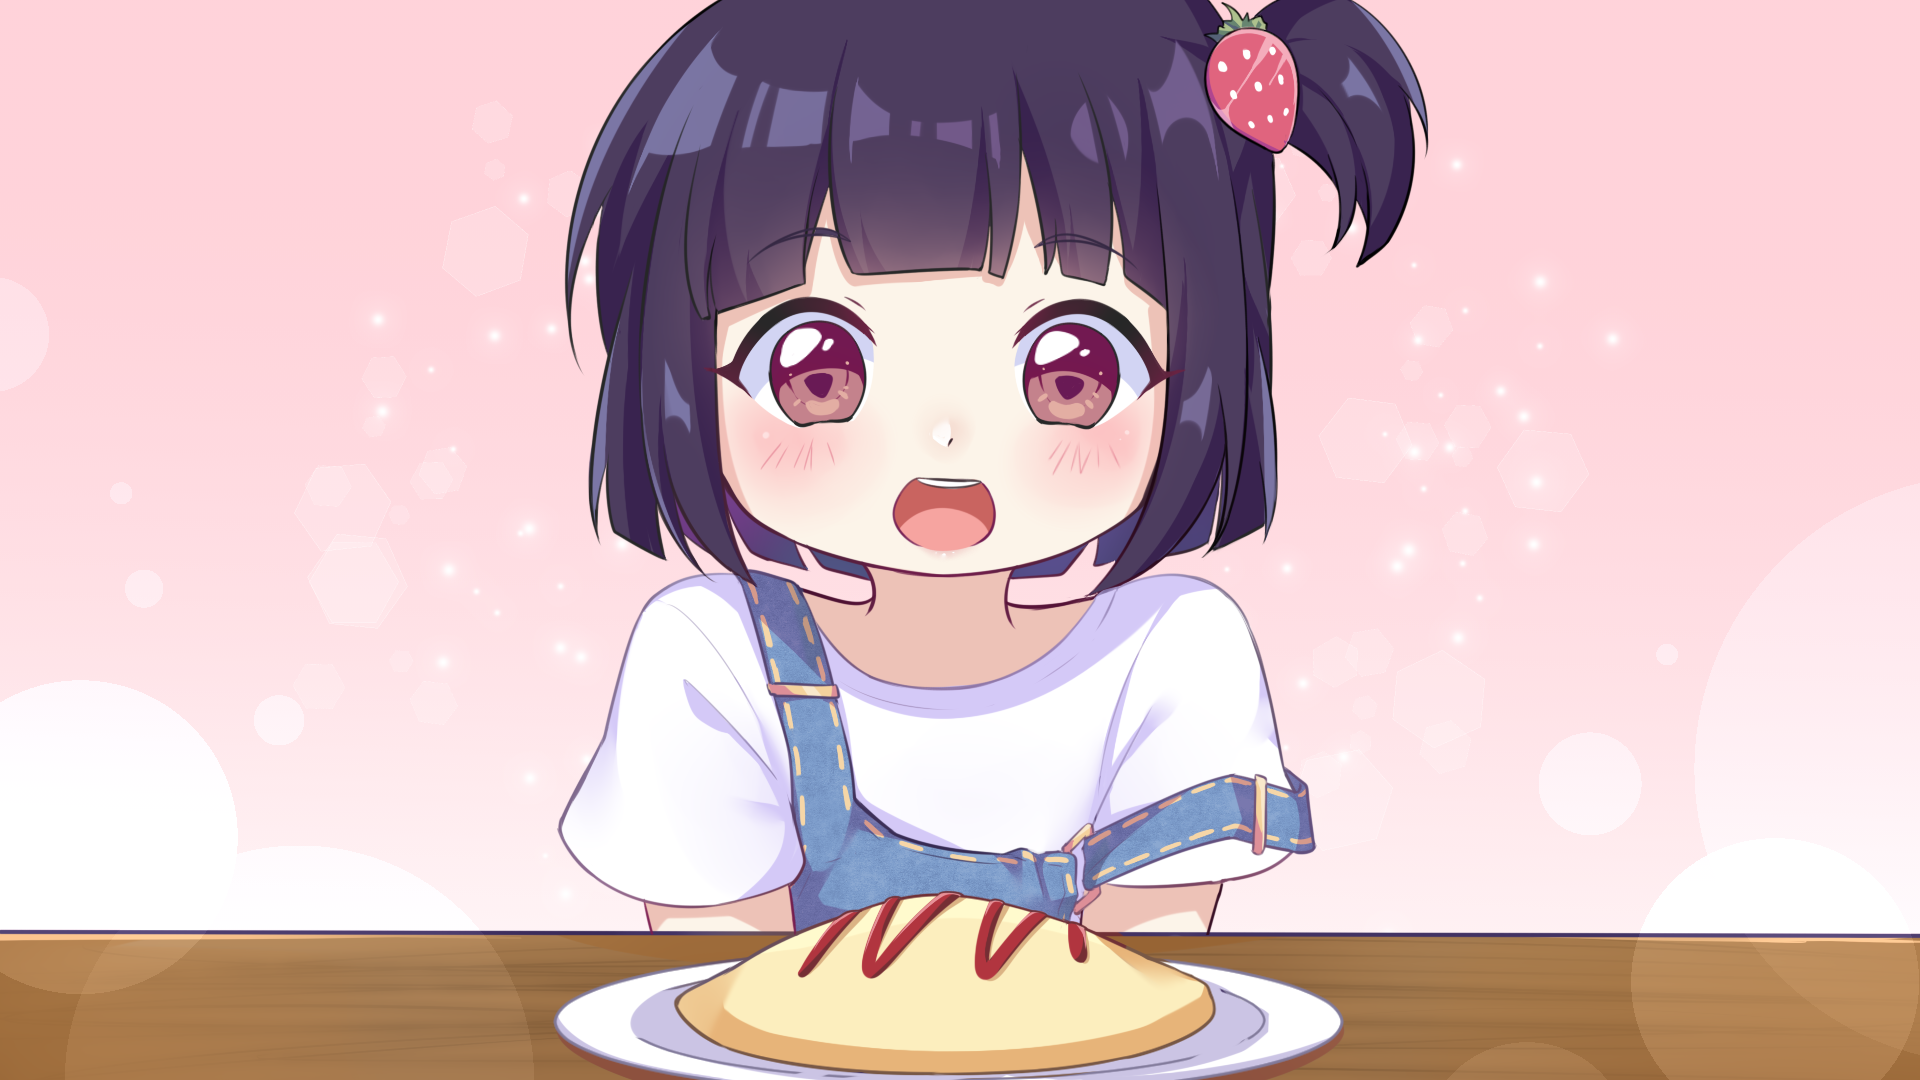 Icon for Omelette rice